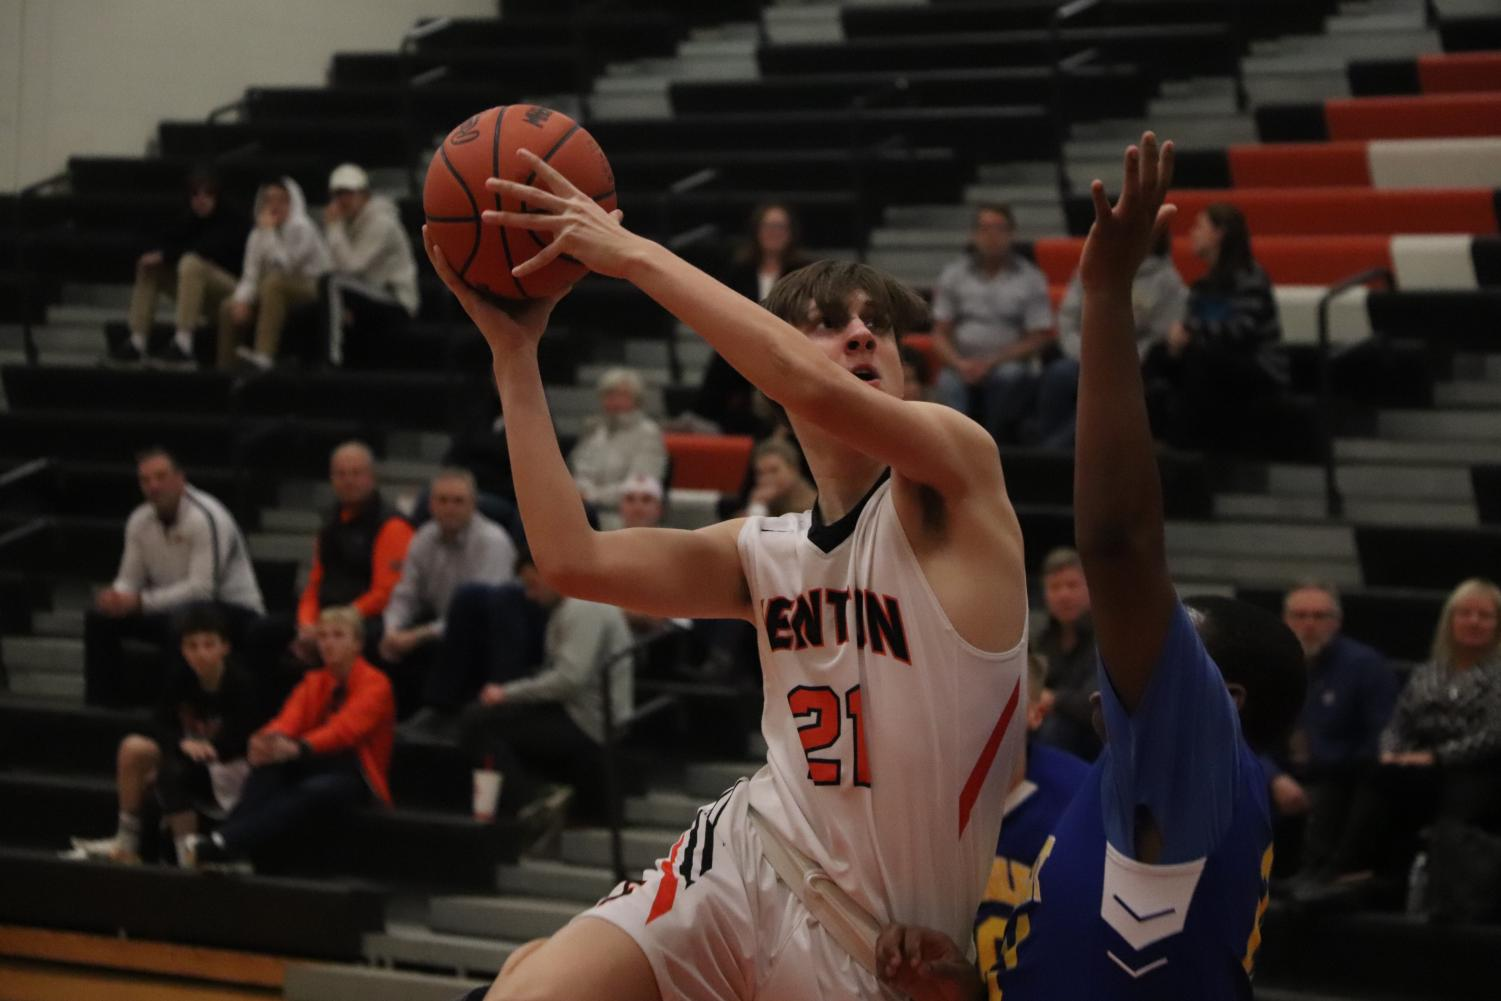 With the game coming to its final minute, sophomore Jacob Korzenowski jumps up in front of his opponent to draw a foul and still get his shot off and in. The Fenton JV boys basketball team ended up winning against Kearsley 54-45.